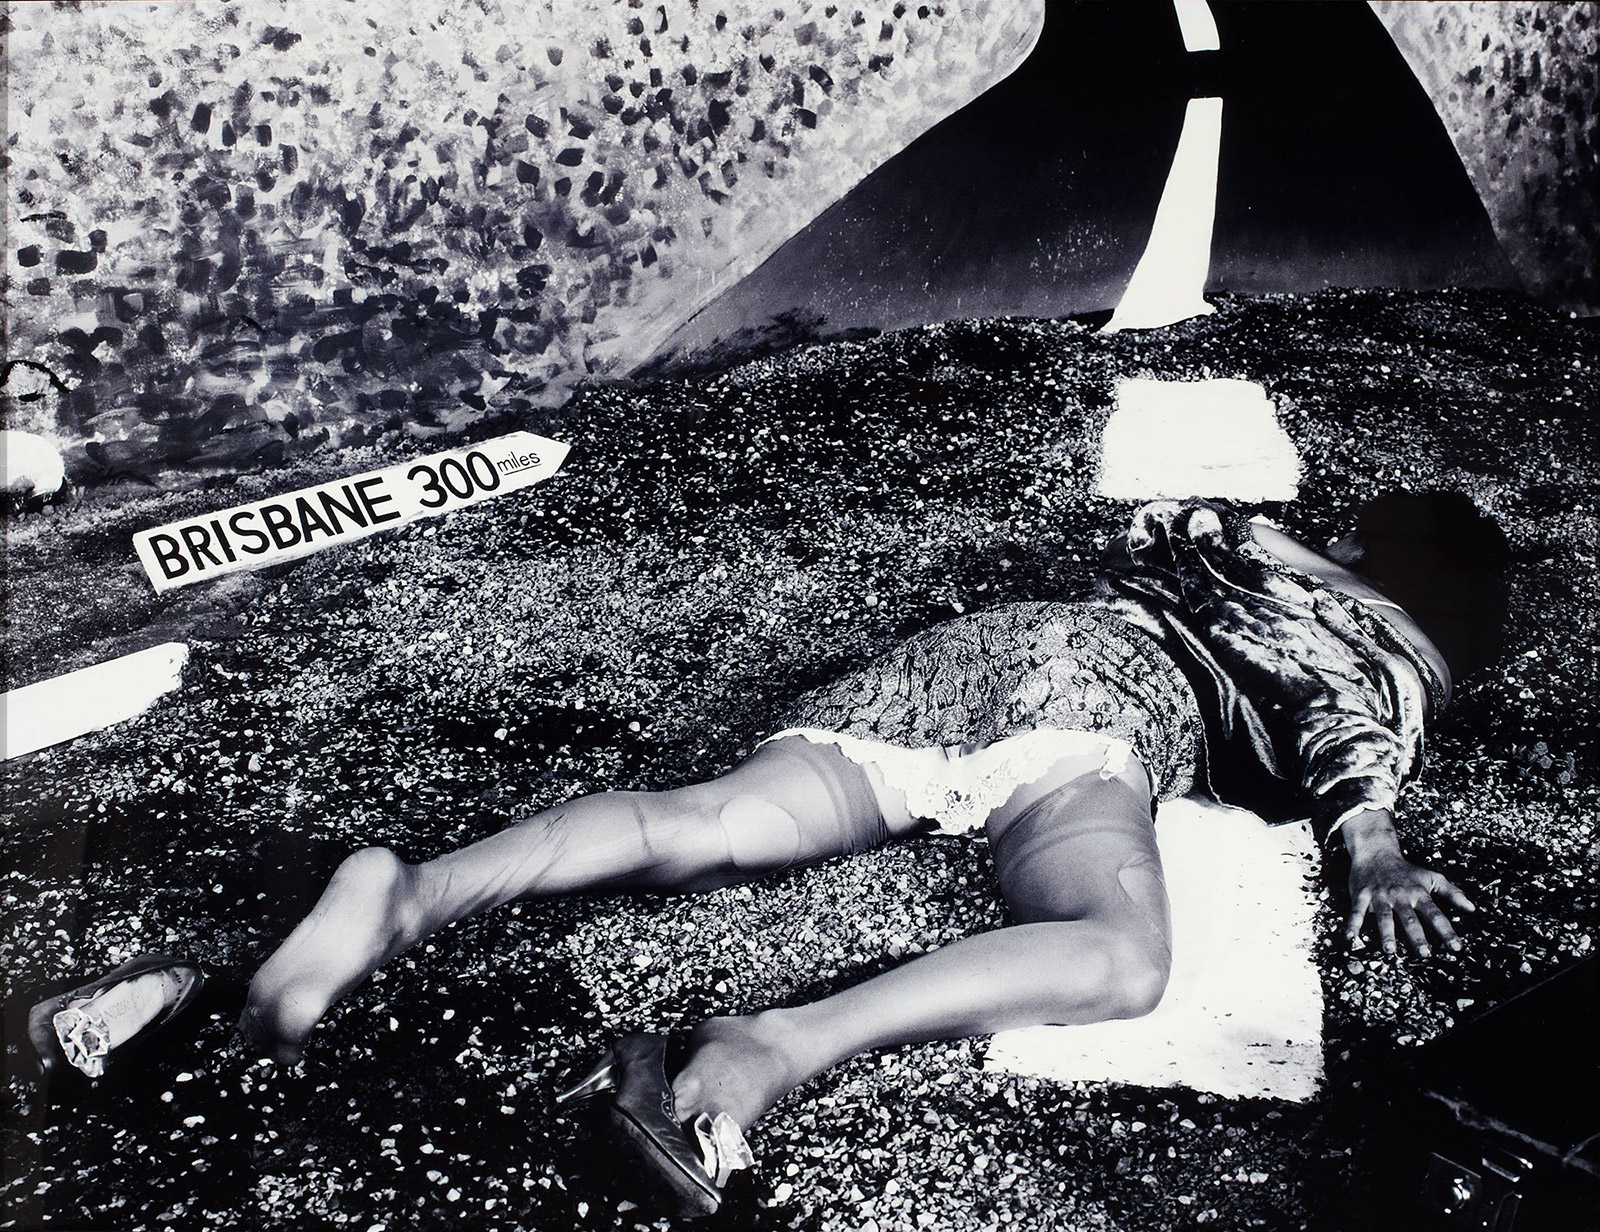 A woman lays face down, sprawled across the centre of a road. Her stockings are torn and her shoes are falling off. A broken street sign lays on the road beside her indicating Brisbane is 300km away. There is no one else in sight.